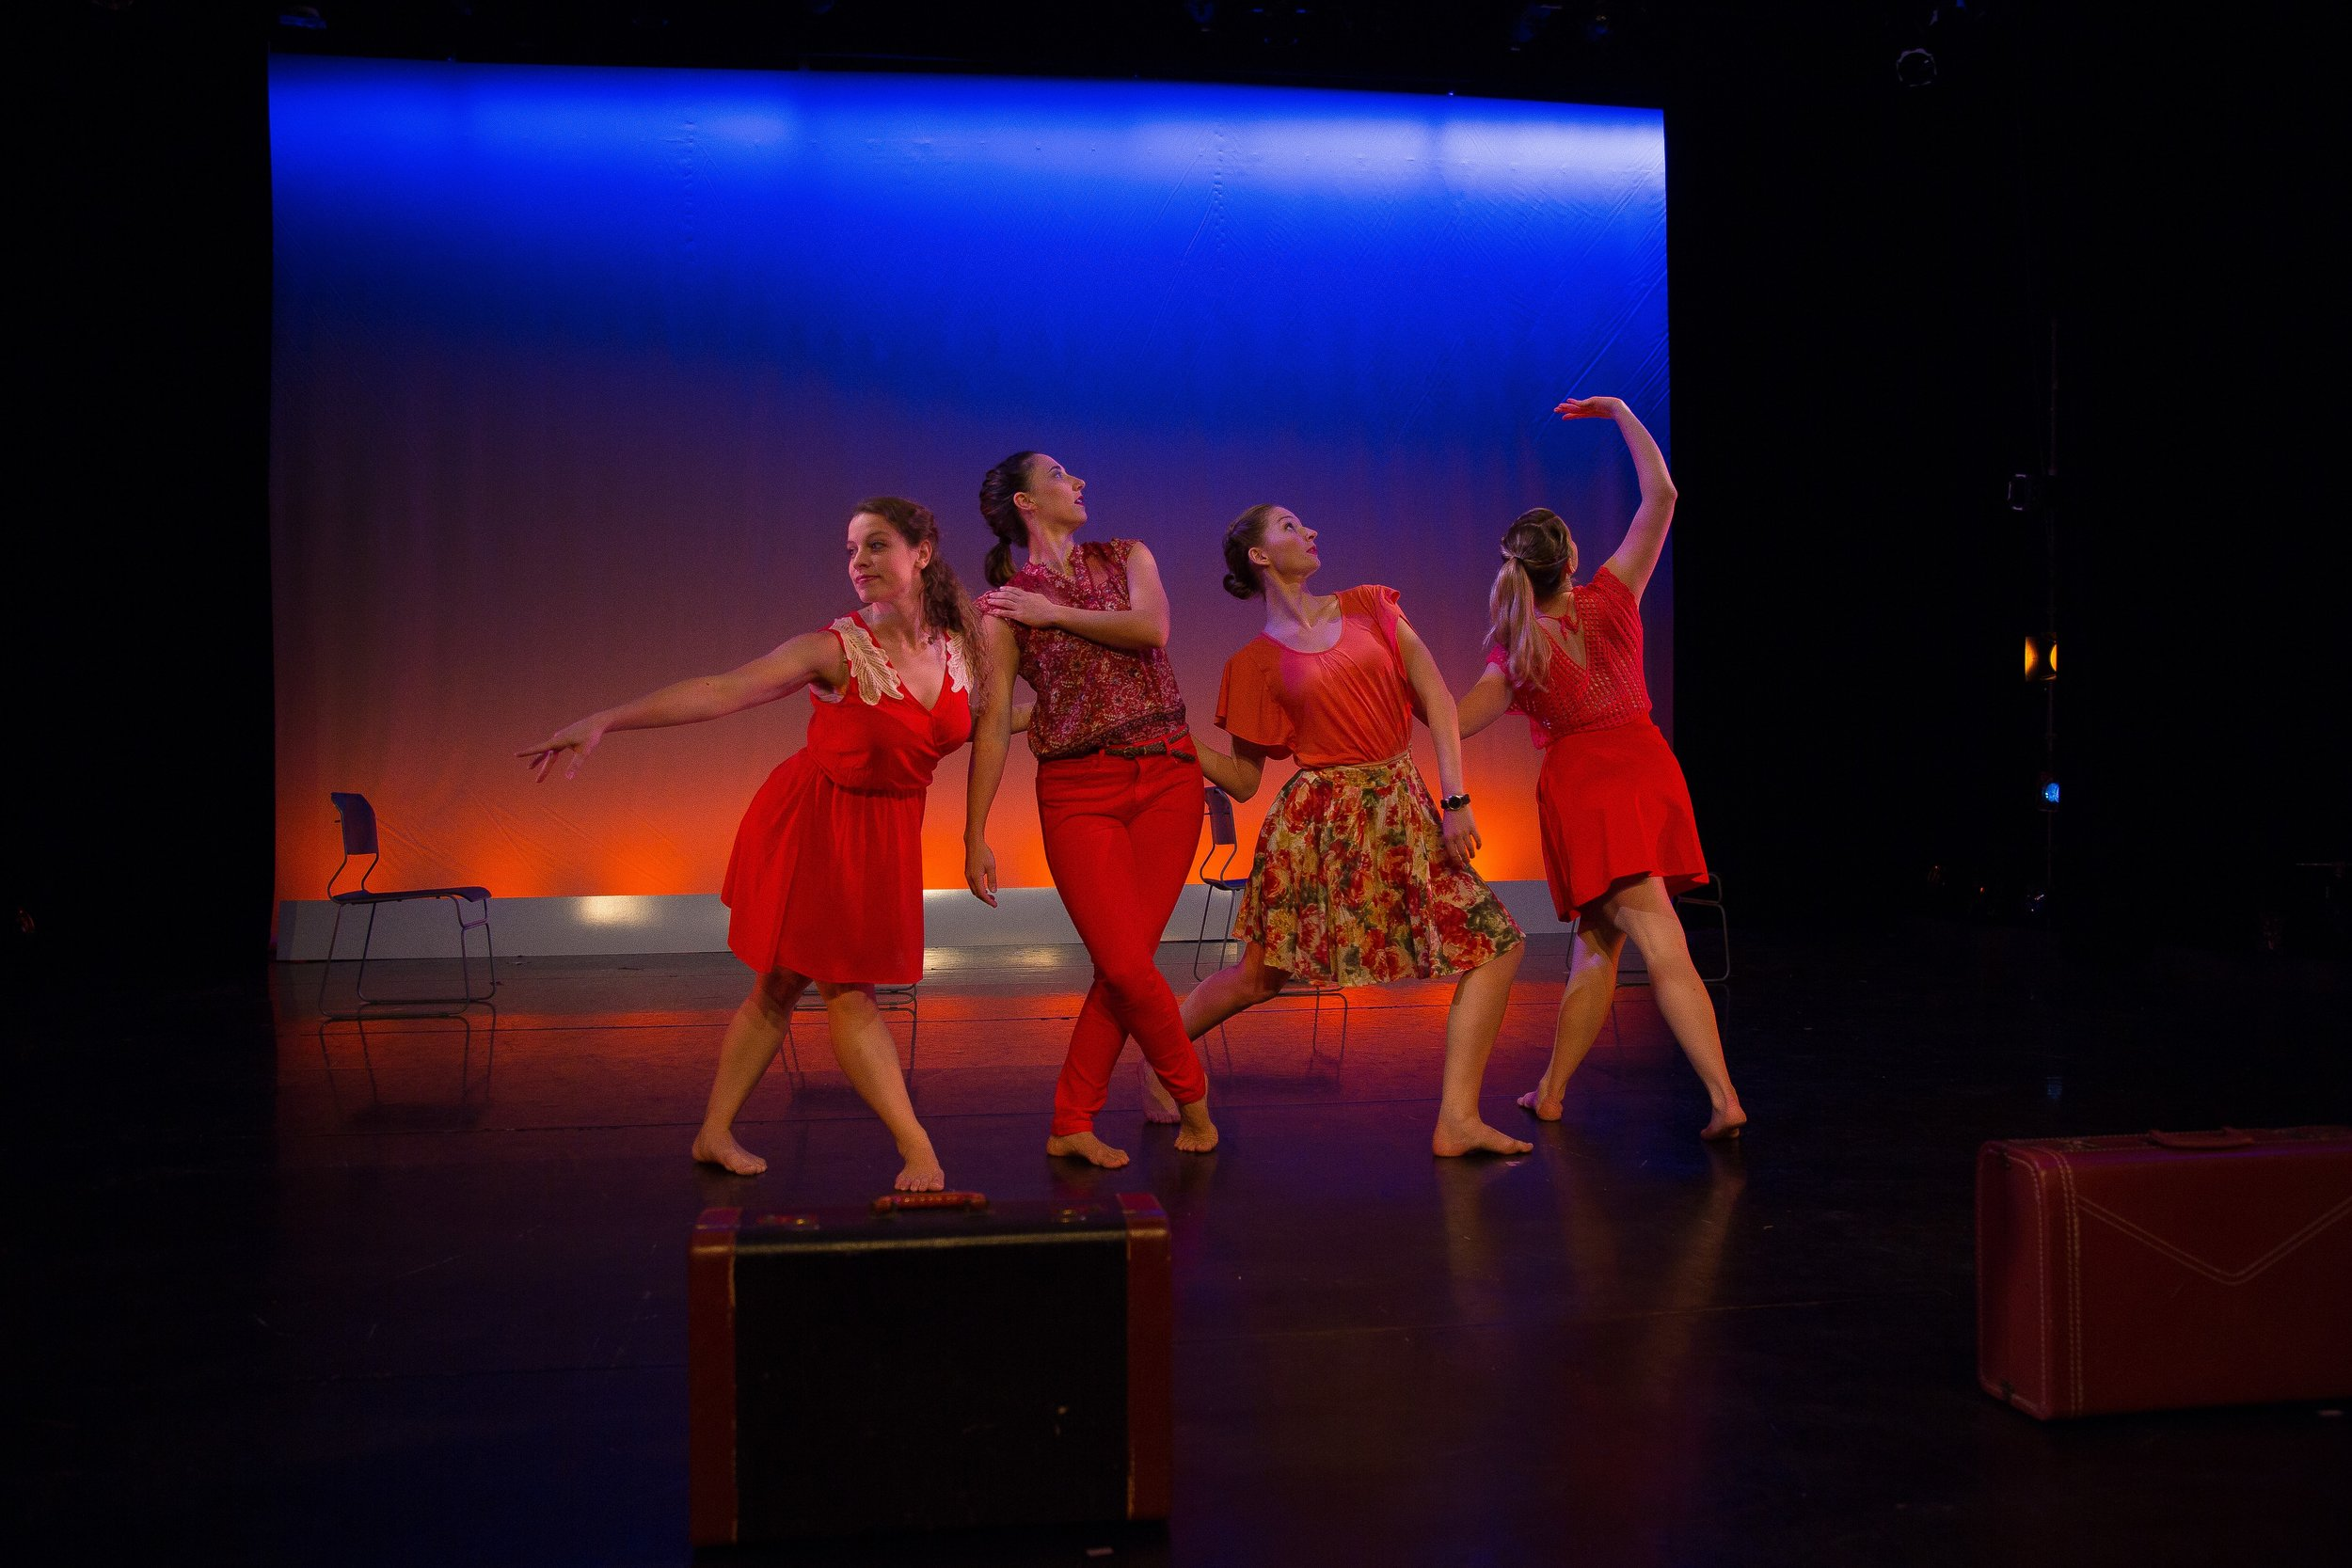 Blue Mountain Express, 2016. Dancers: Brenna Dames, Eleni Grove, Olivia Landrum, Matina Phillips. Photo: David Dowling.